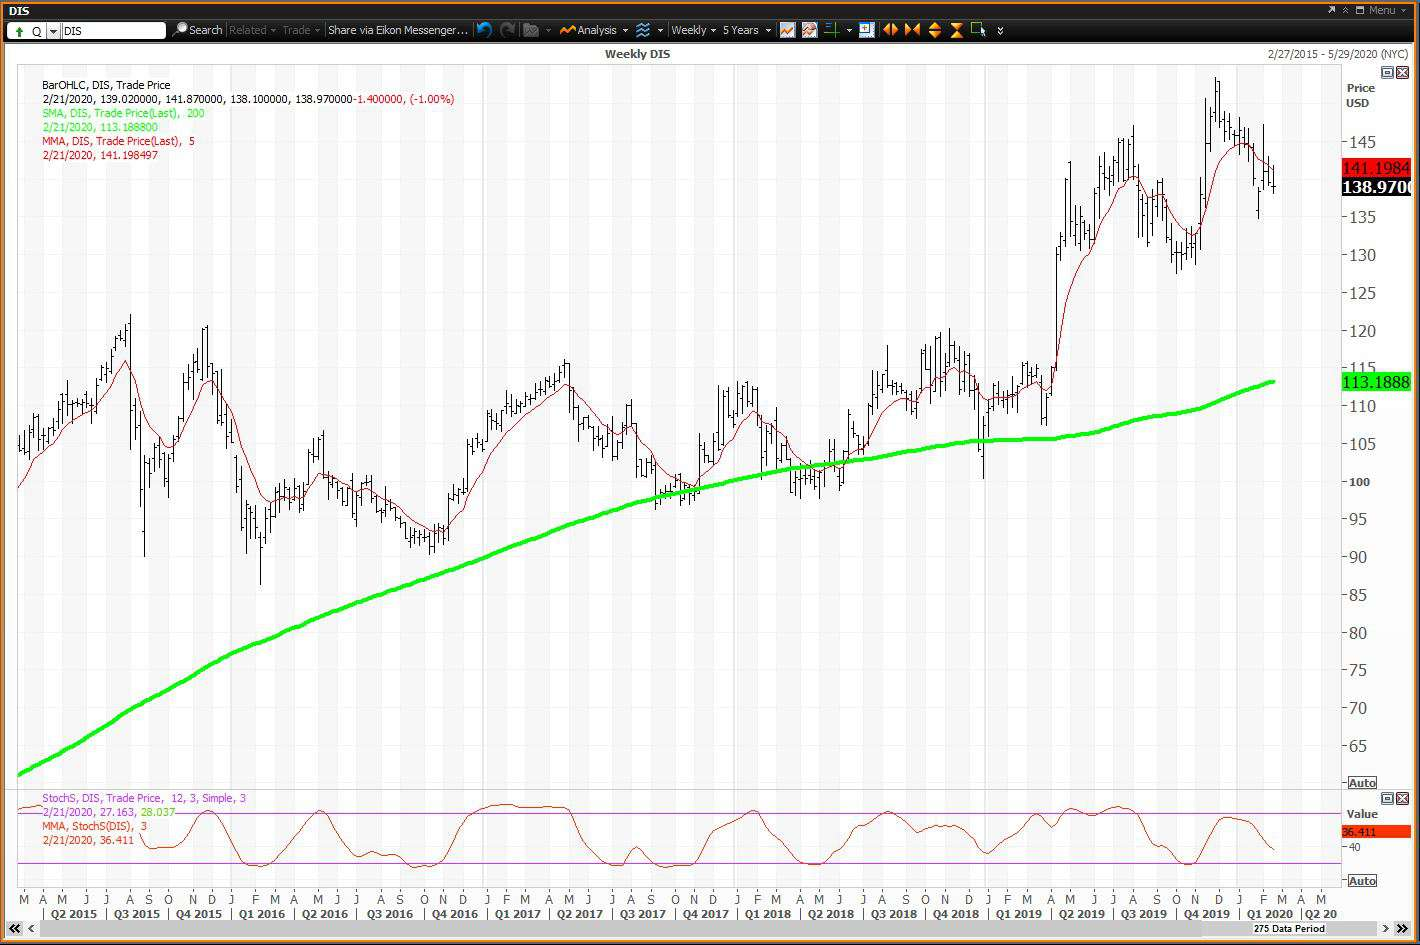 Weekly chart showing the share price performance of The Walt Disney Company (DIS)